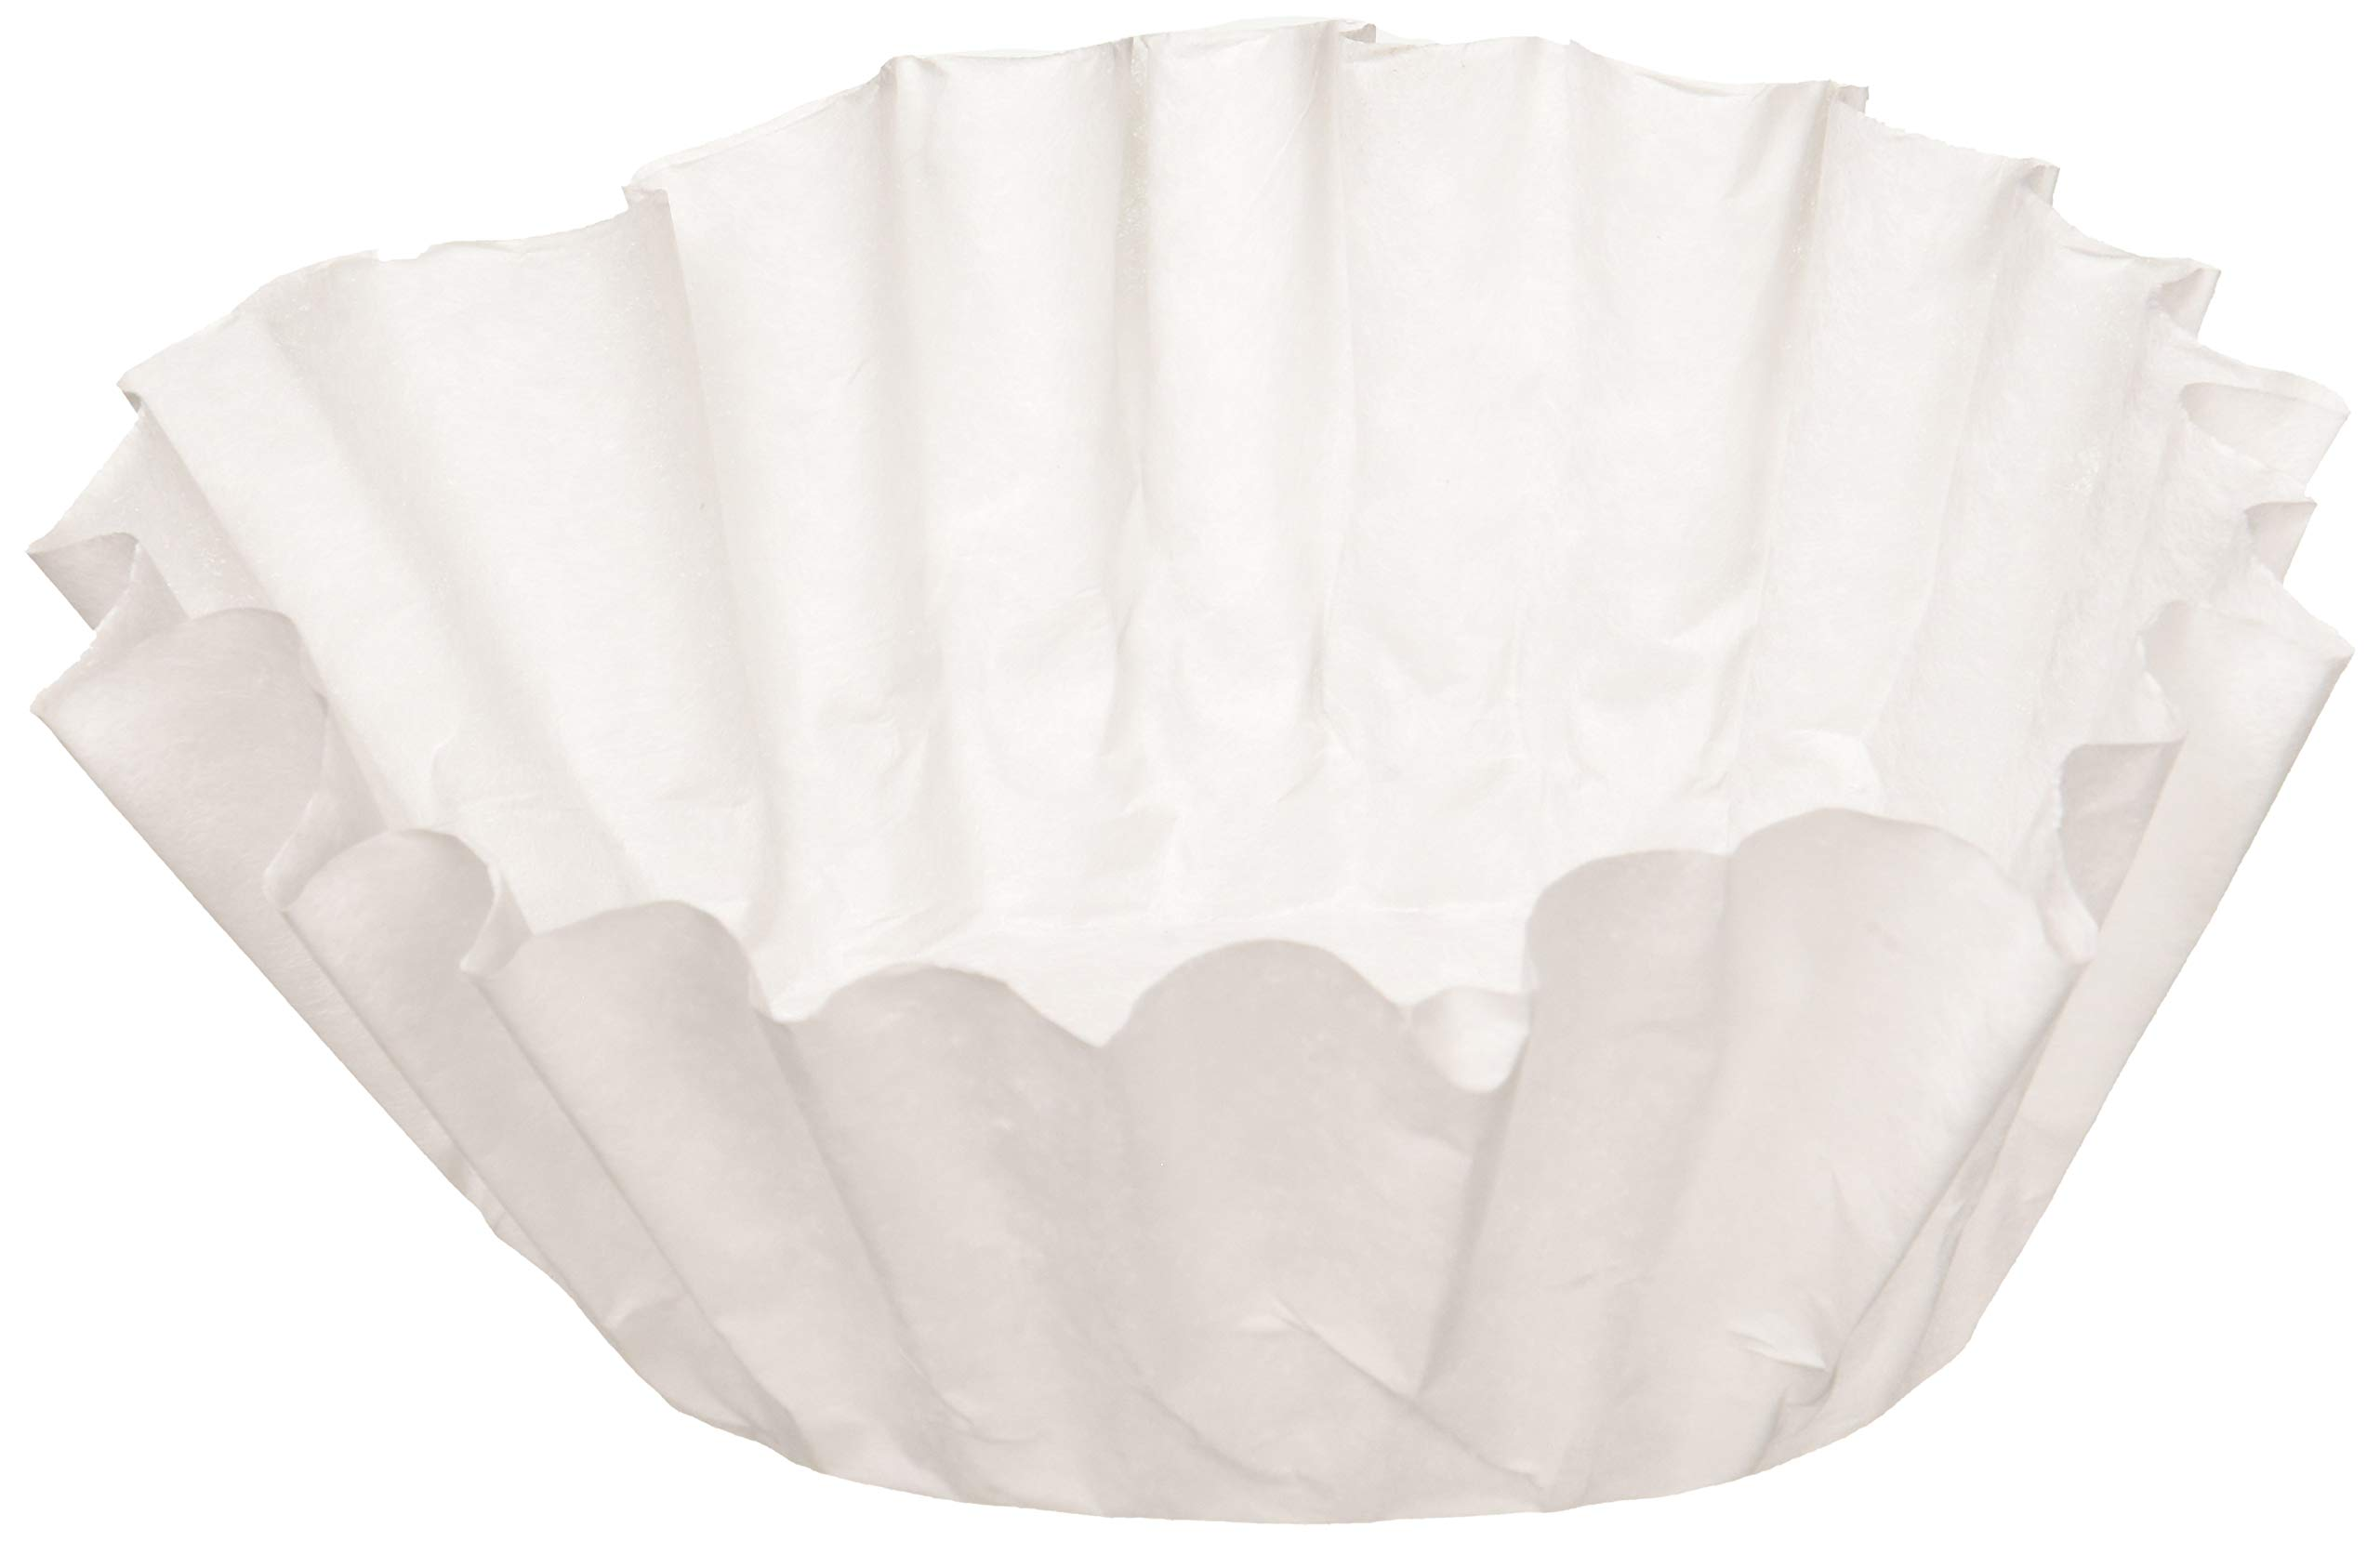 BUNN 6001 12-Cup Commercial Coffee Filters, 500-count, White by BUNN